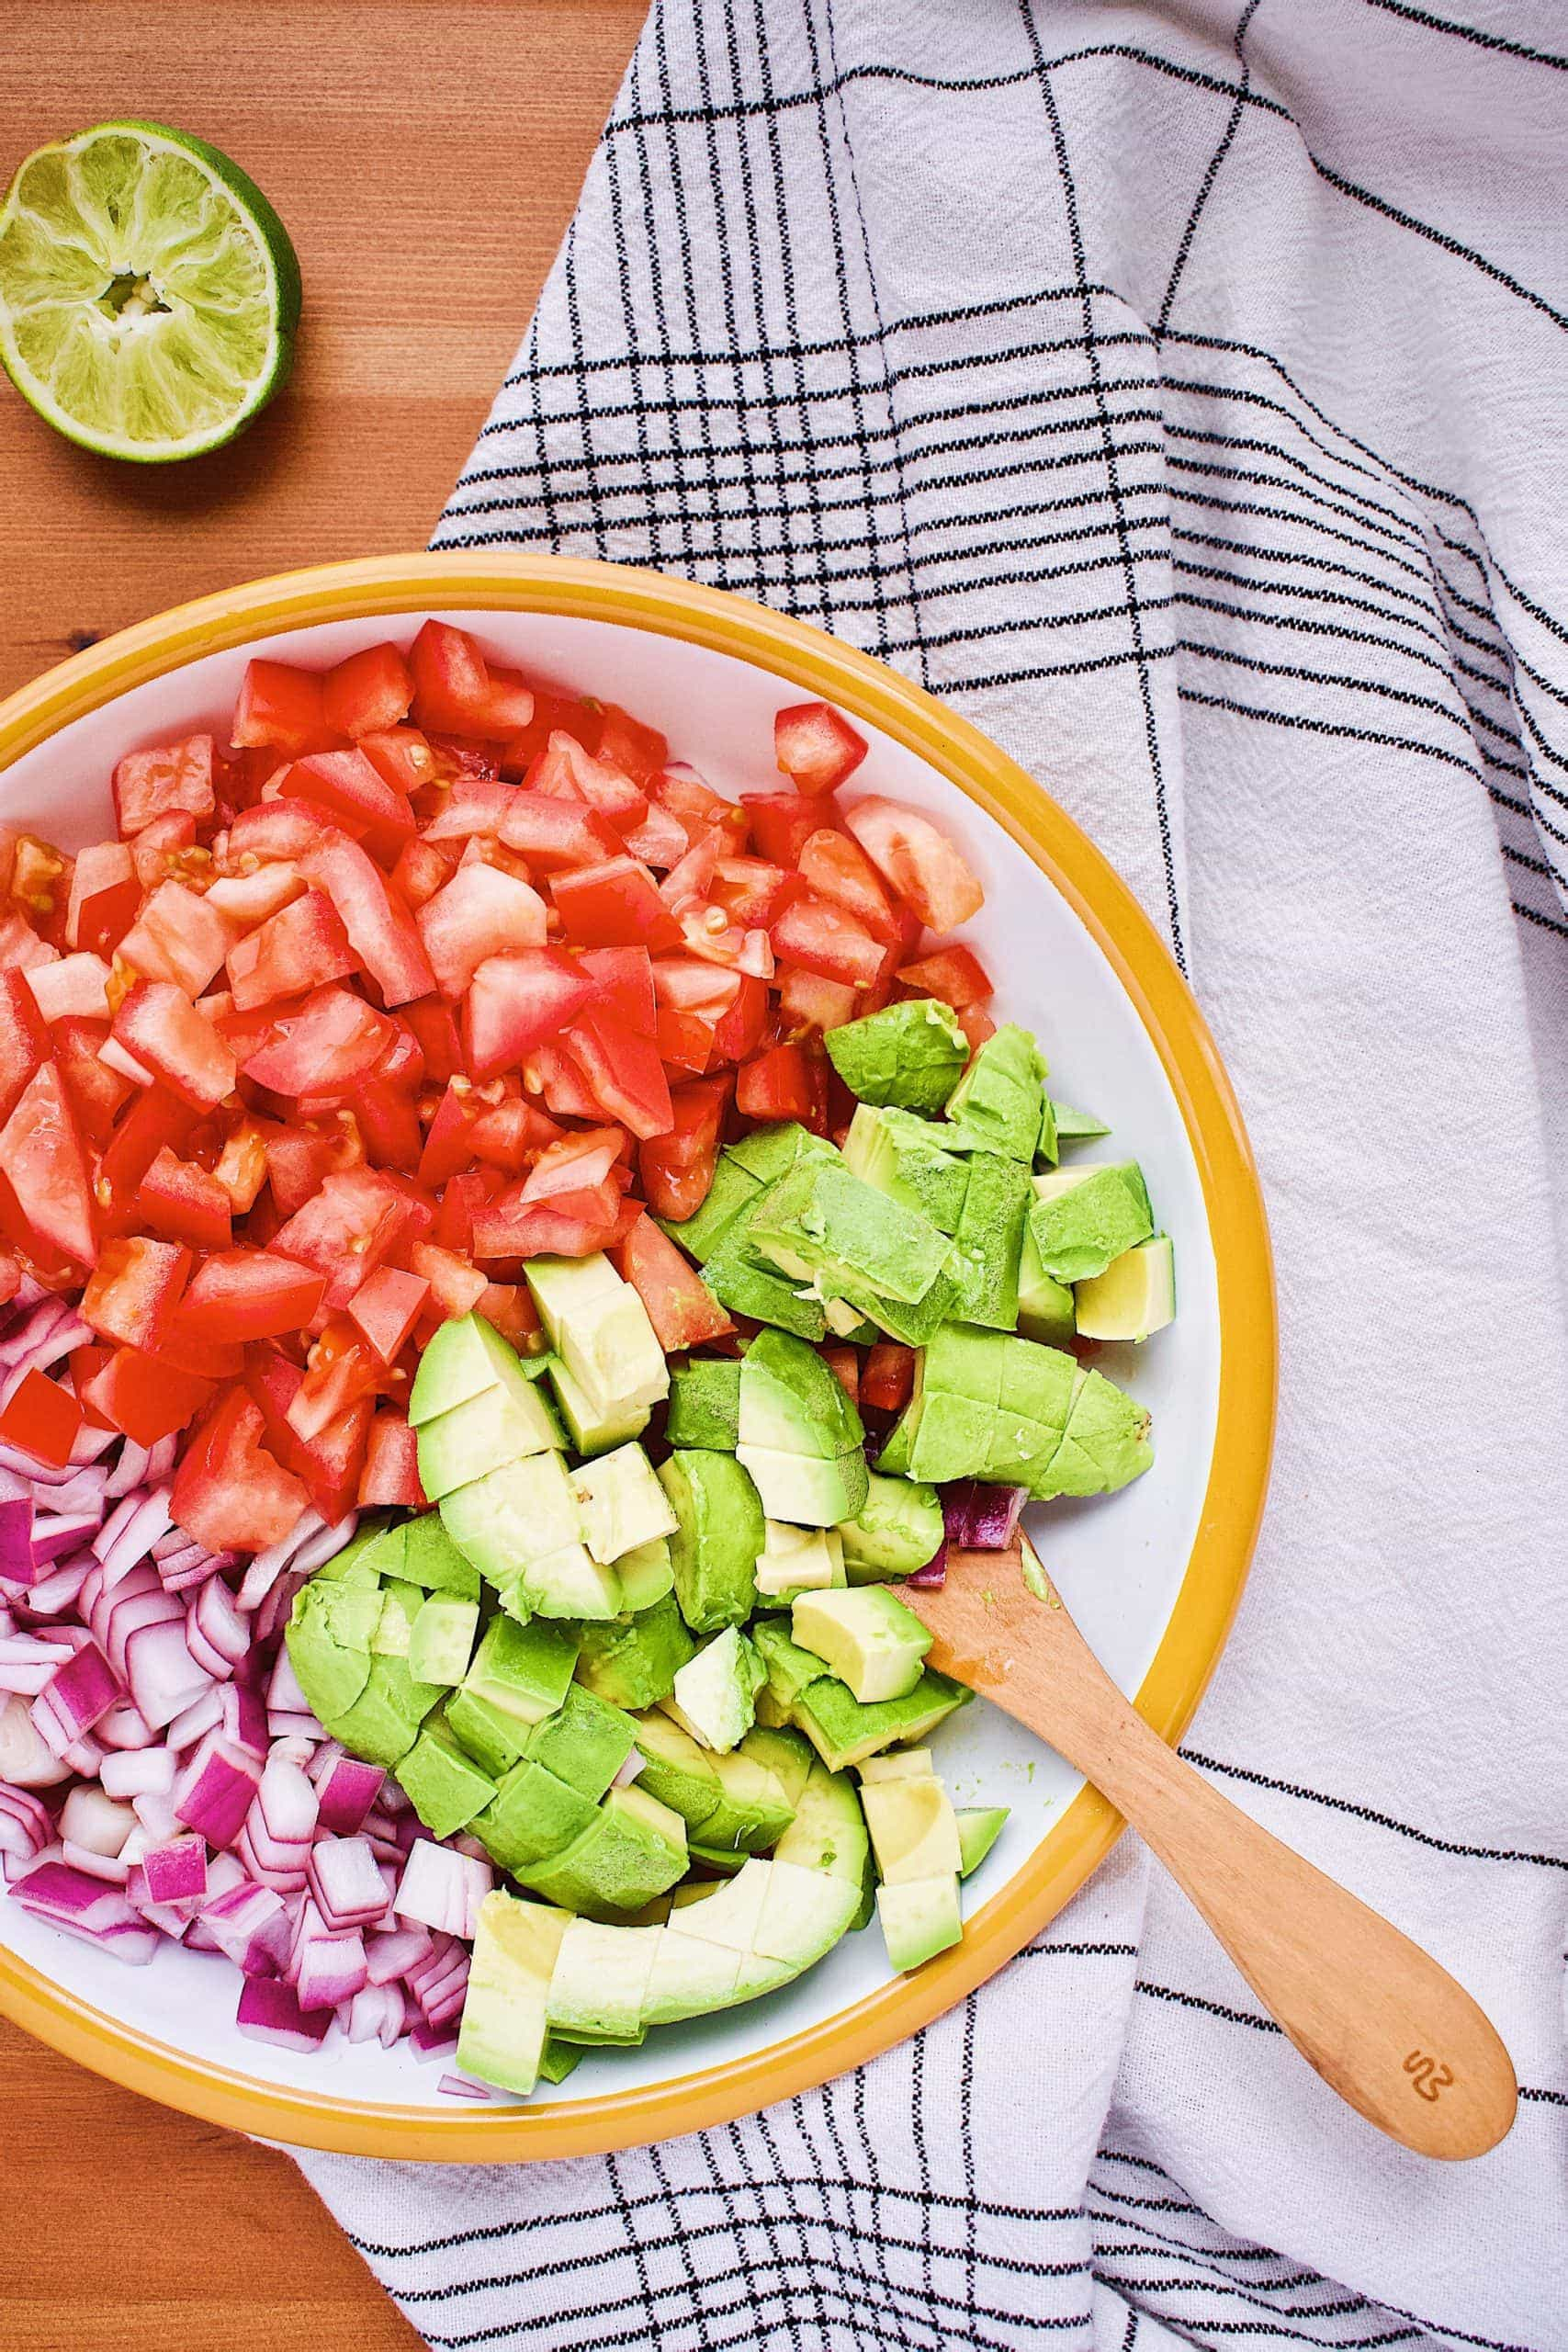 Avocado Salsa ingredients in a bowl ready to be mixed gently